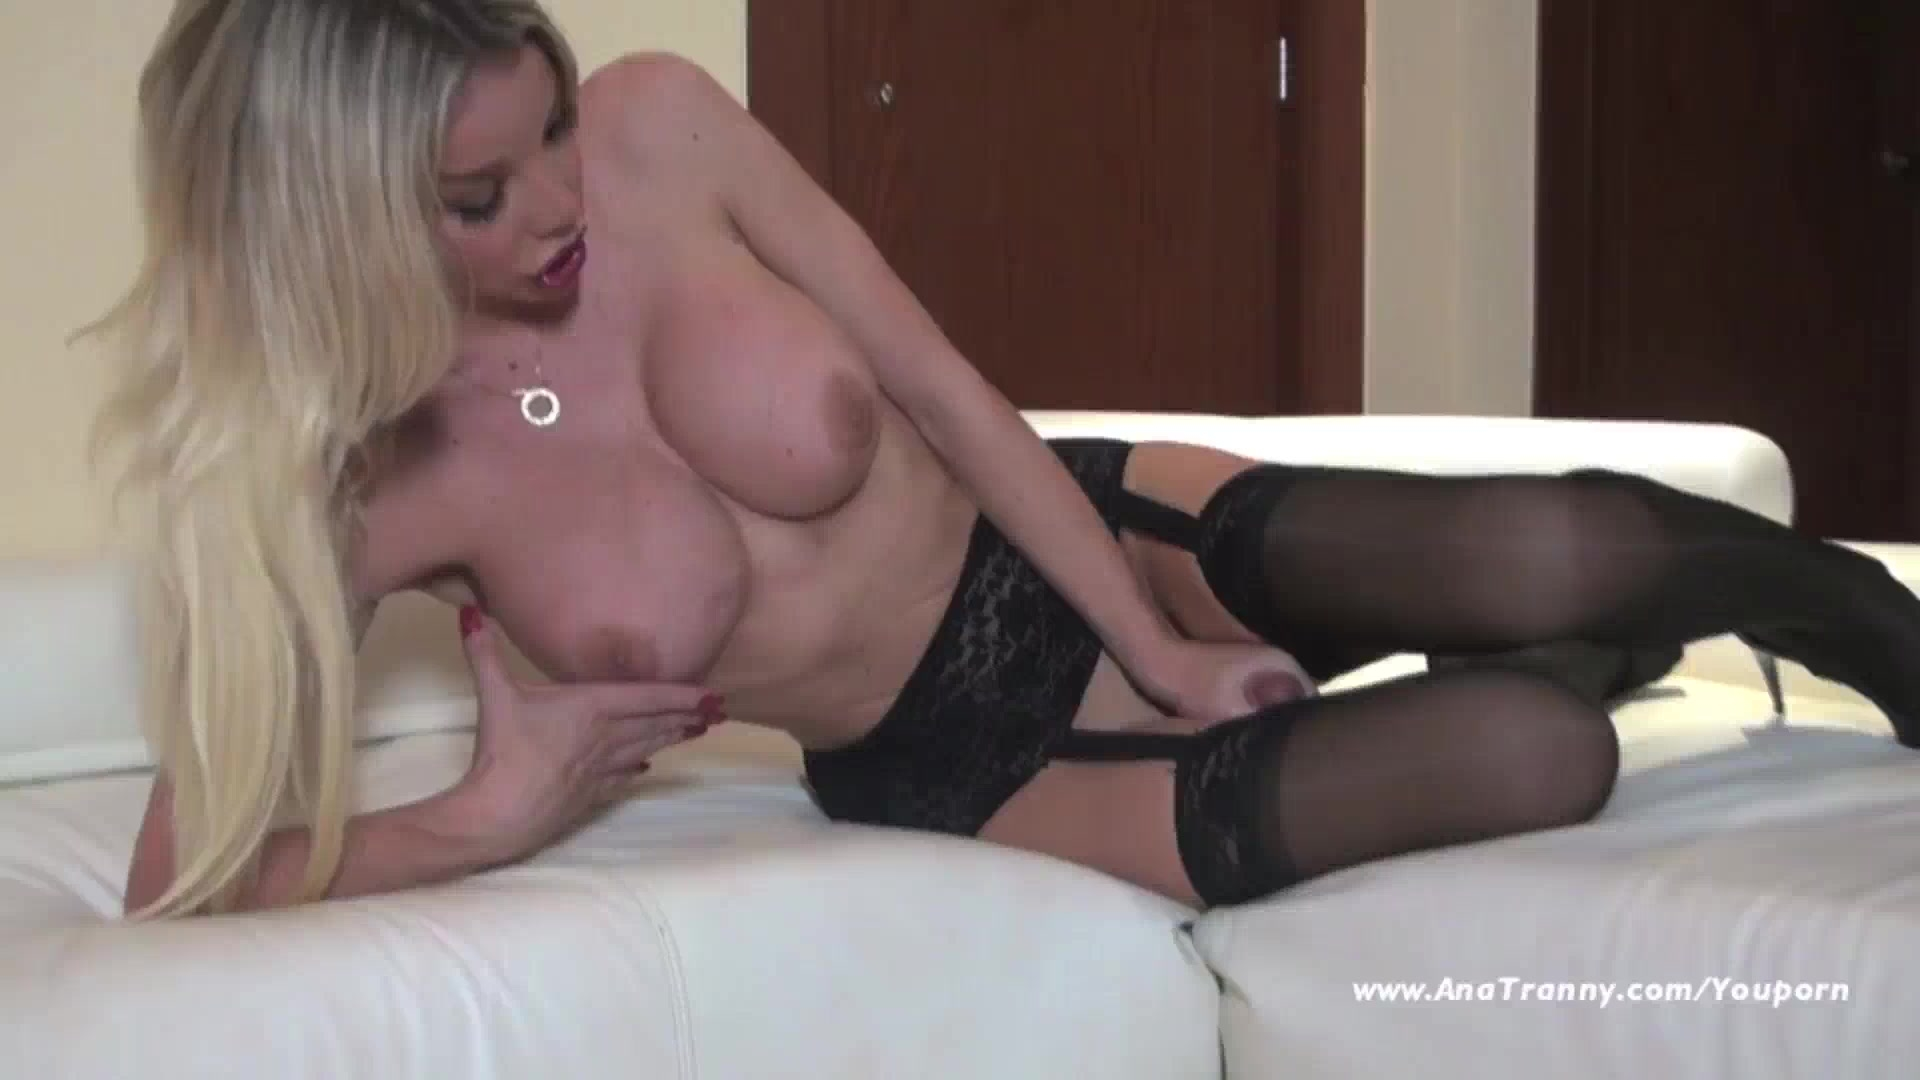 Ana Mancini in Black stockings